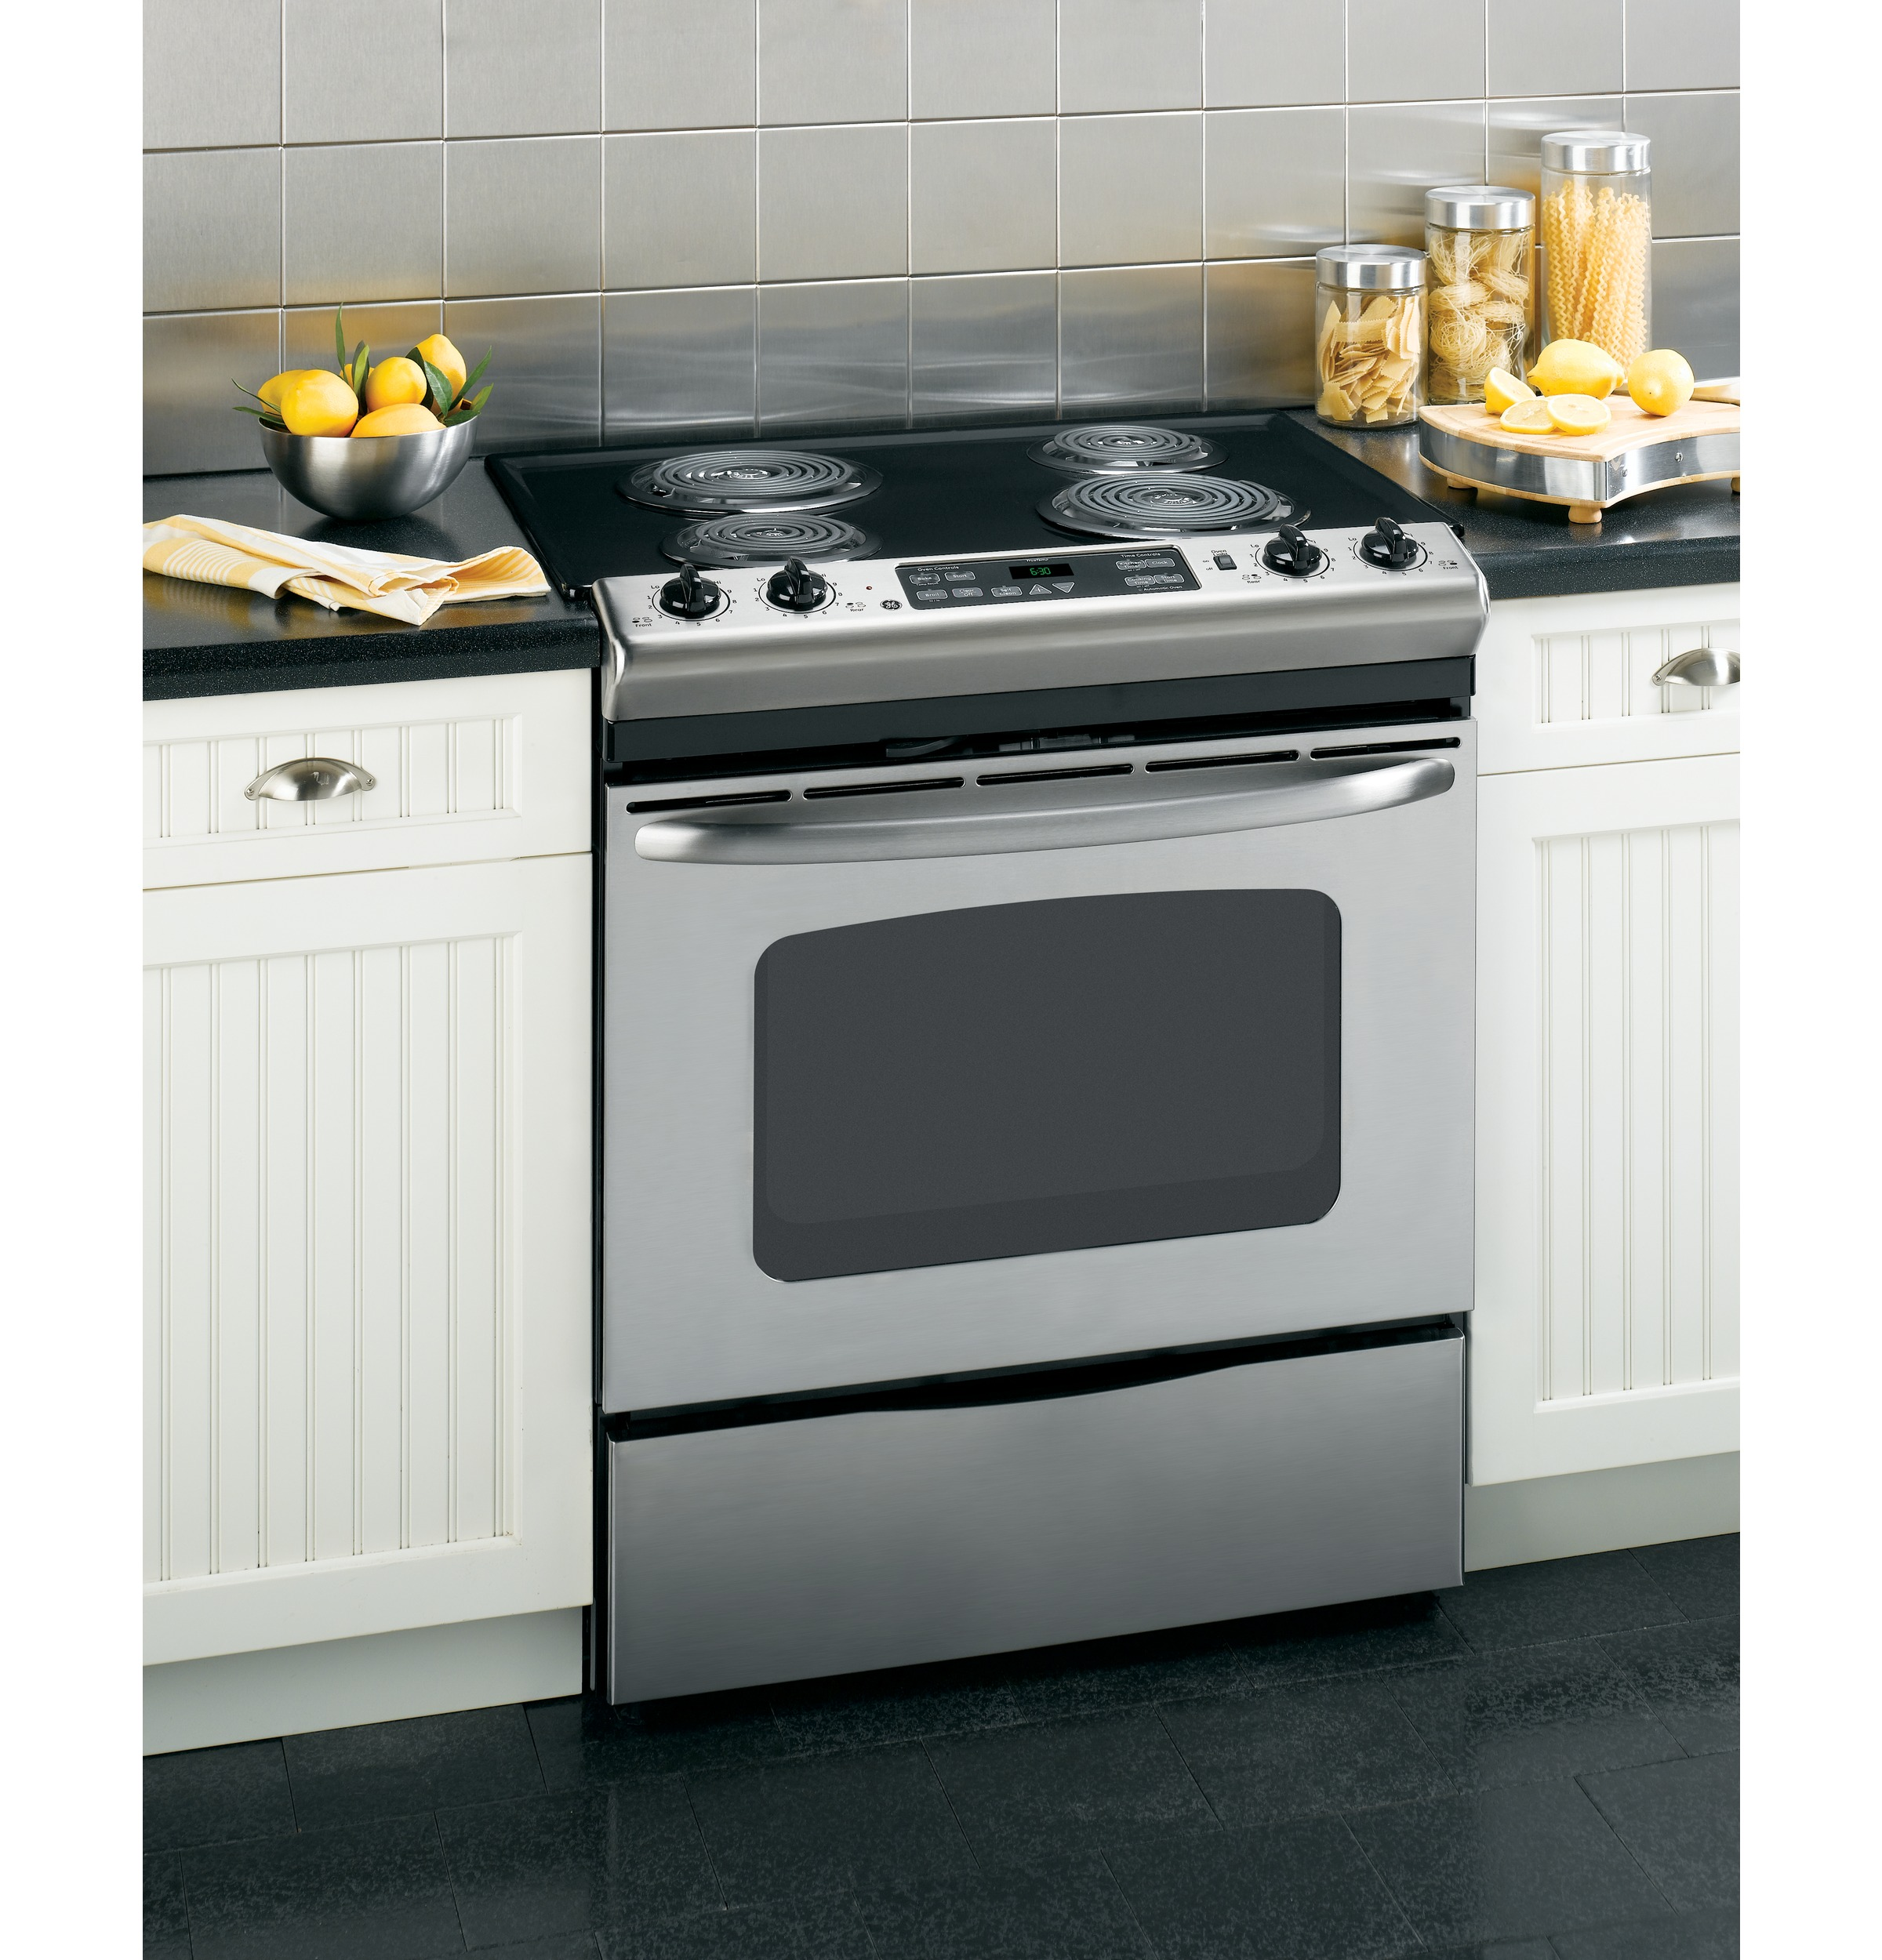 Best Slide In Ranges Electric ~ Ge quot slide in electric range with self cleaning oven